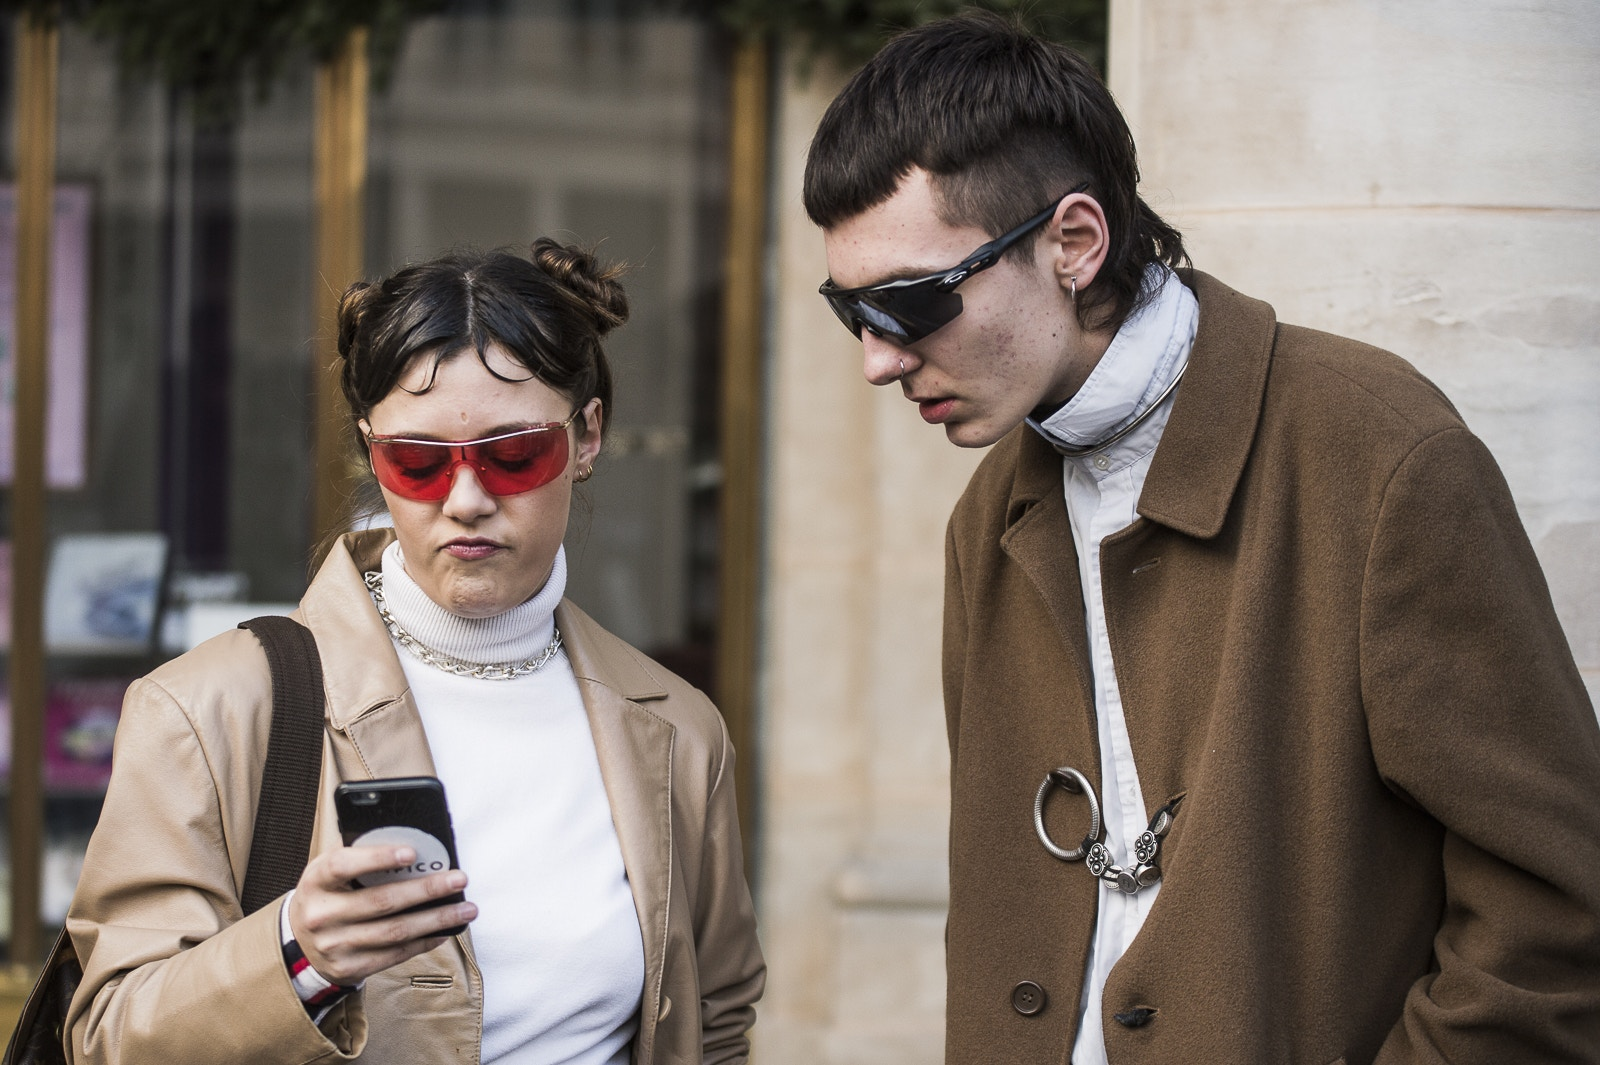 paris-fashion-week-fall-winter-2018-street-style-day-2-04.jpg